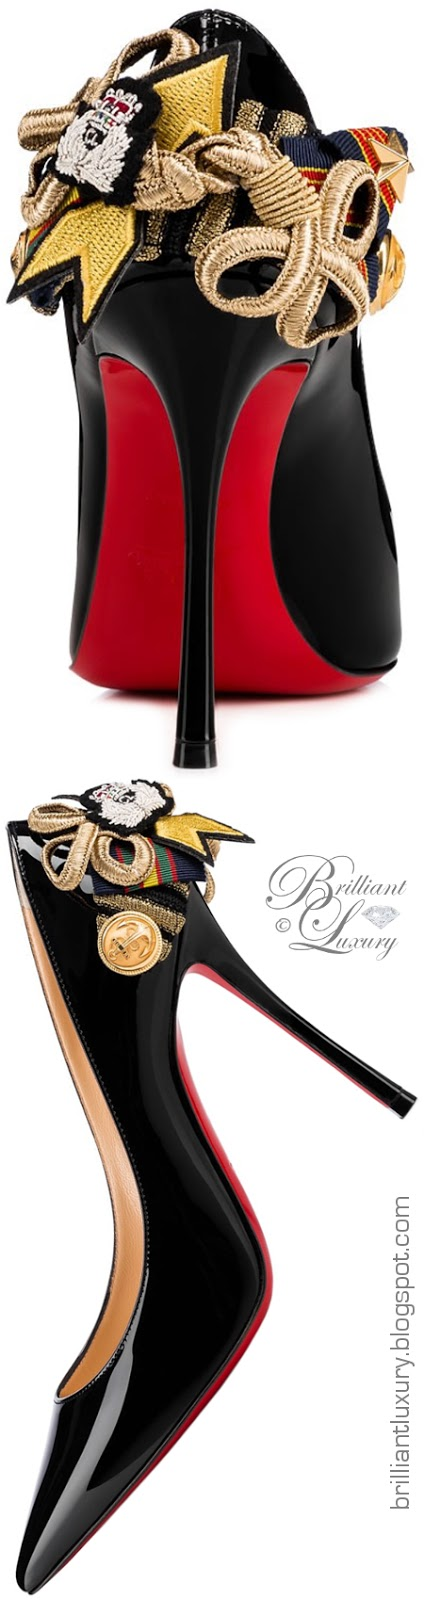 Brilliant Luxury ♦ Christian Louboutin Galonna Pumps